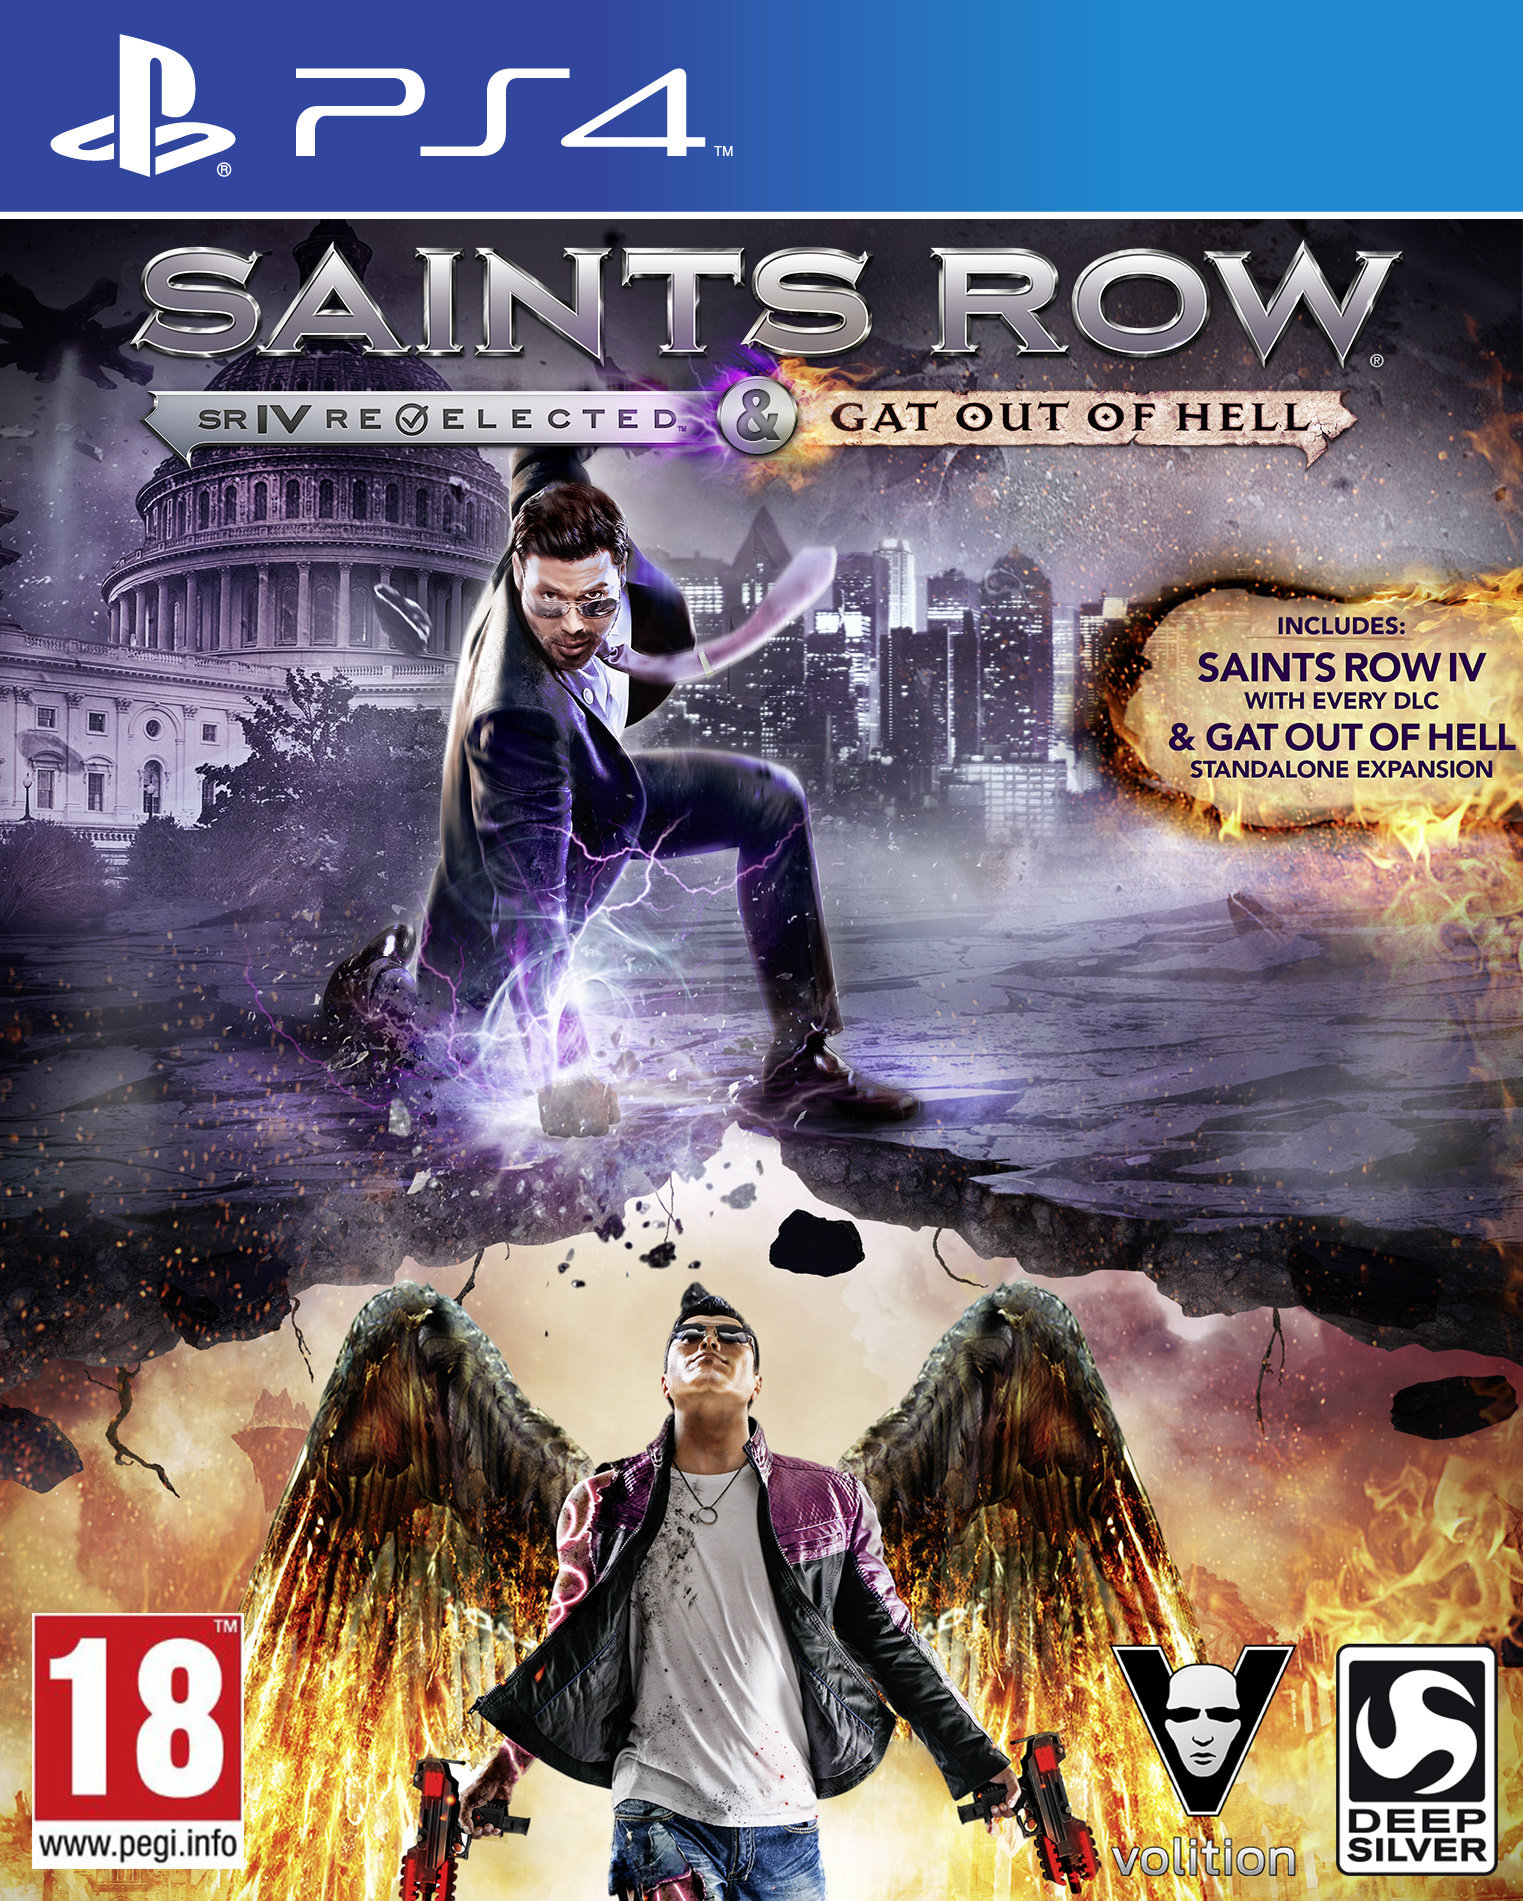 PS4 Saints Row 4 Re Elected and Gat Out of Hell Nové